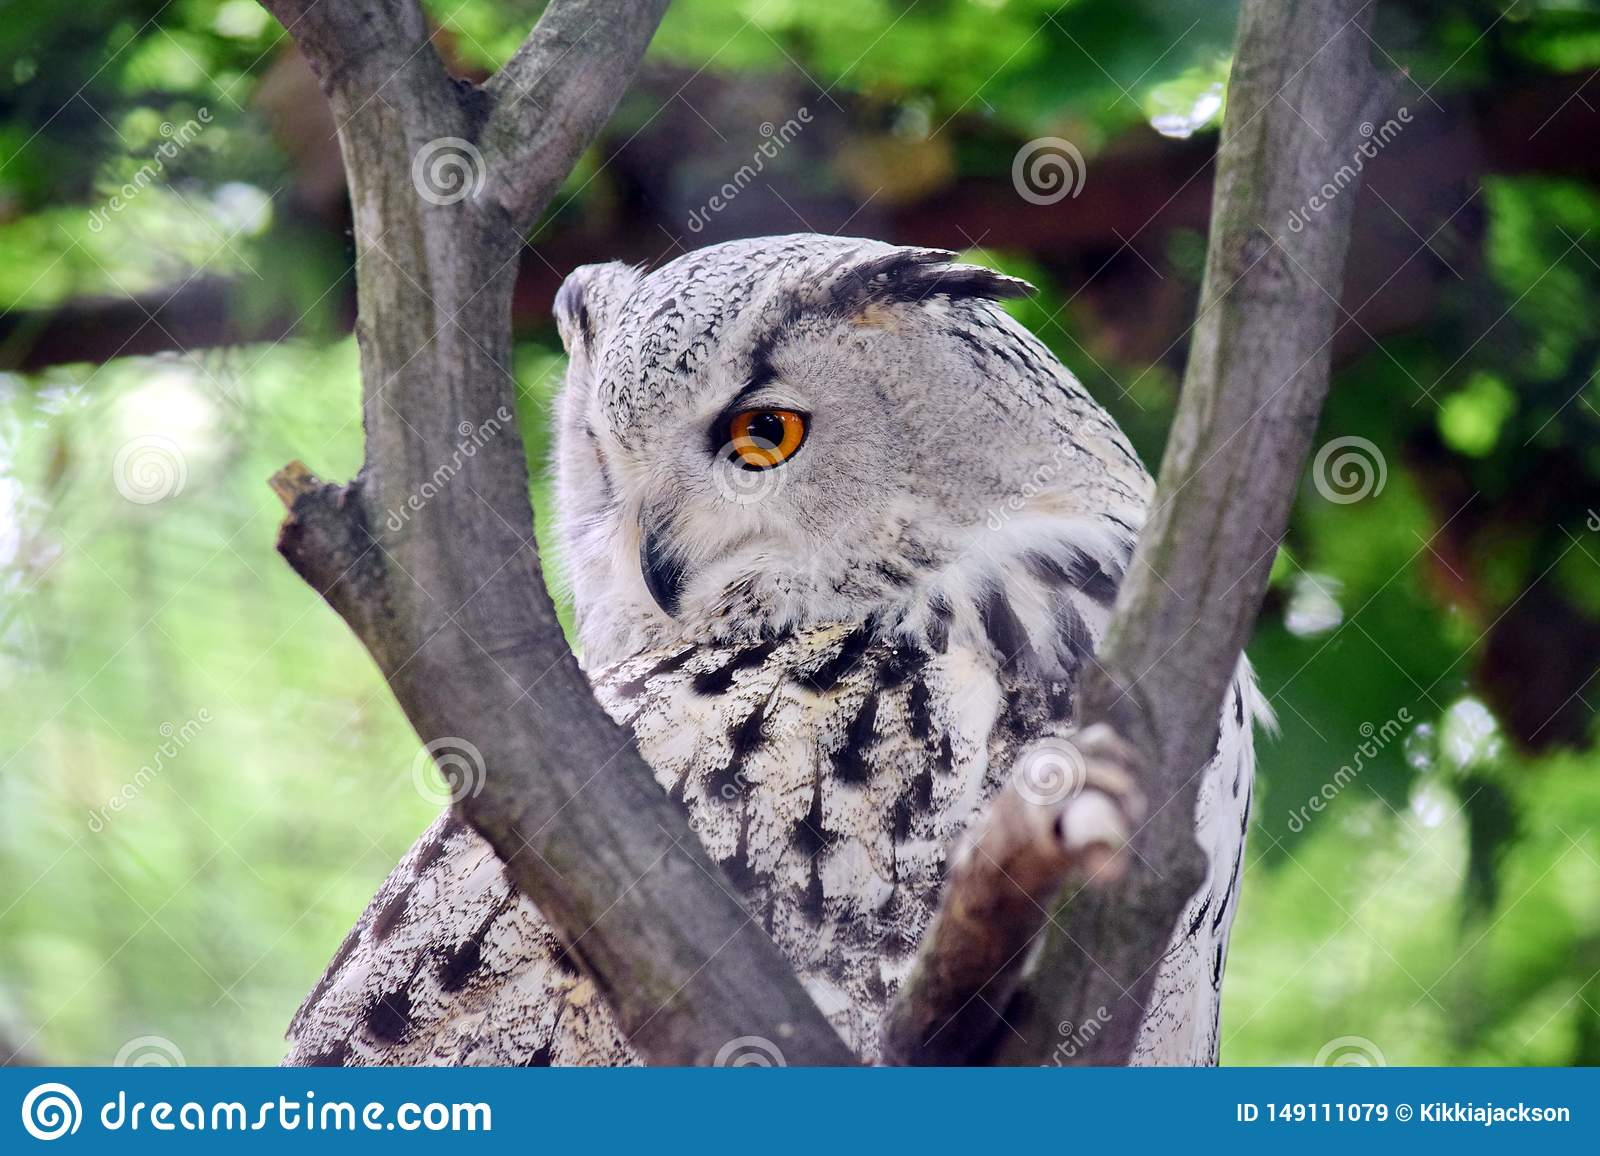 SIberian Owl Bubo Bubo Sibiricus on Tree